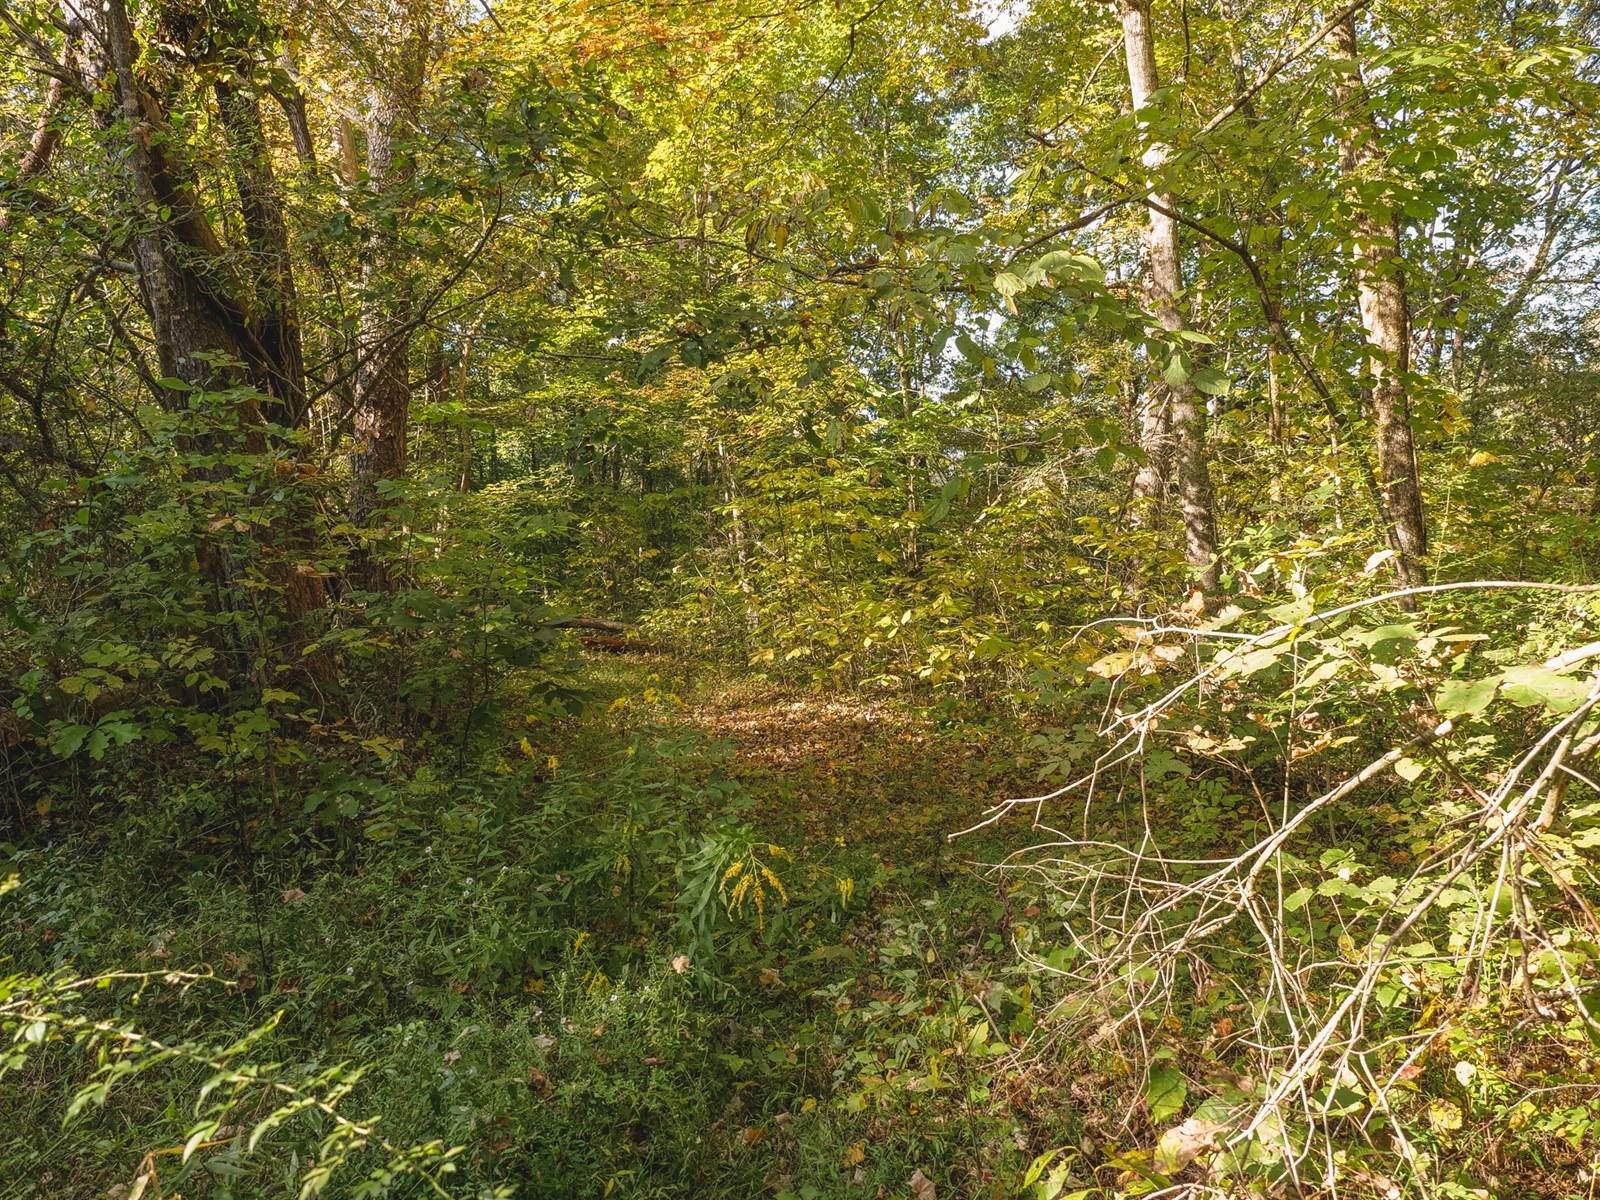 45 Acres of Wooded Land in East TN For Sale